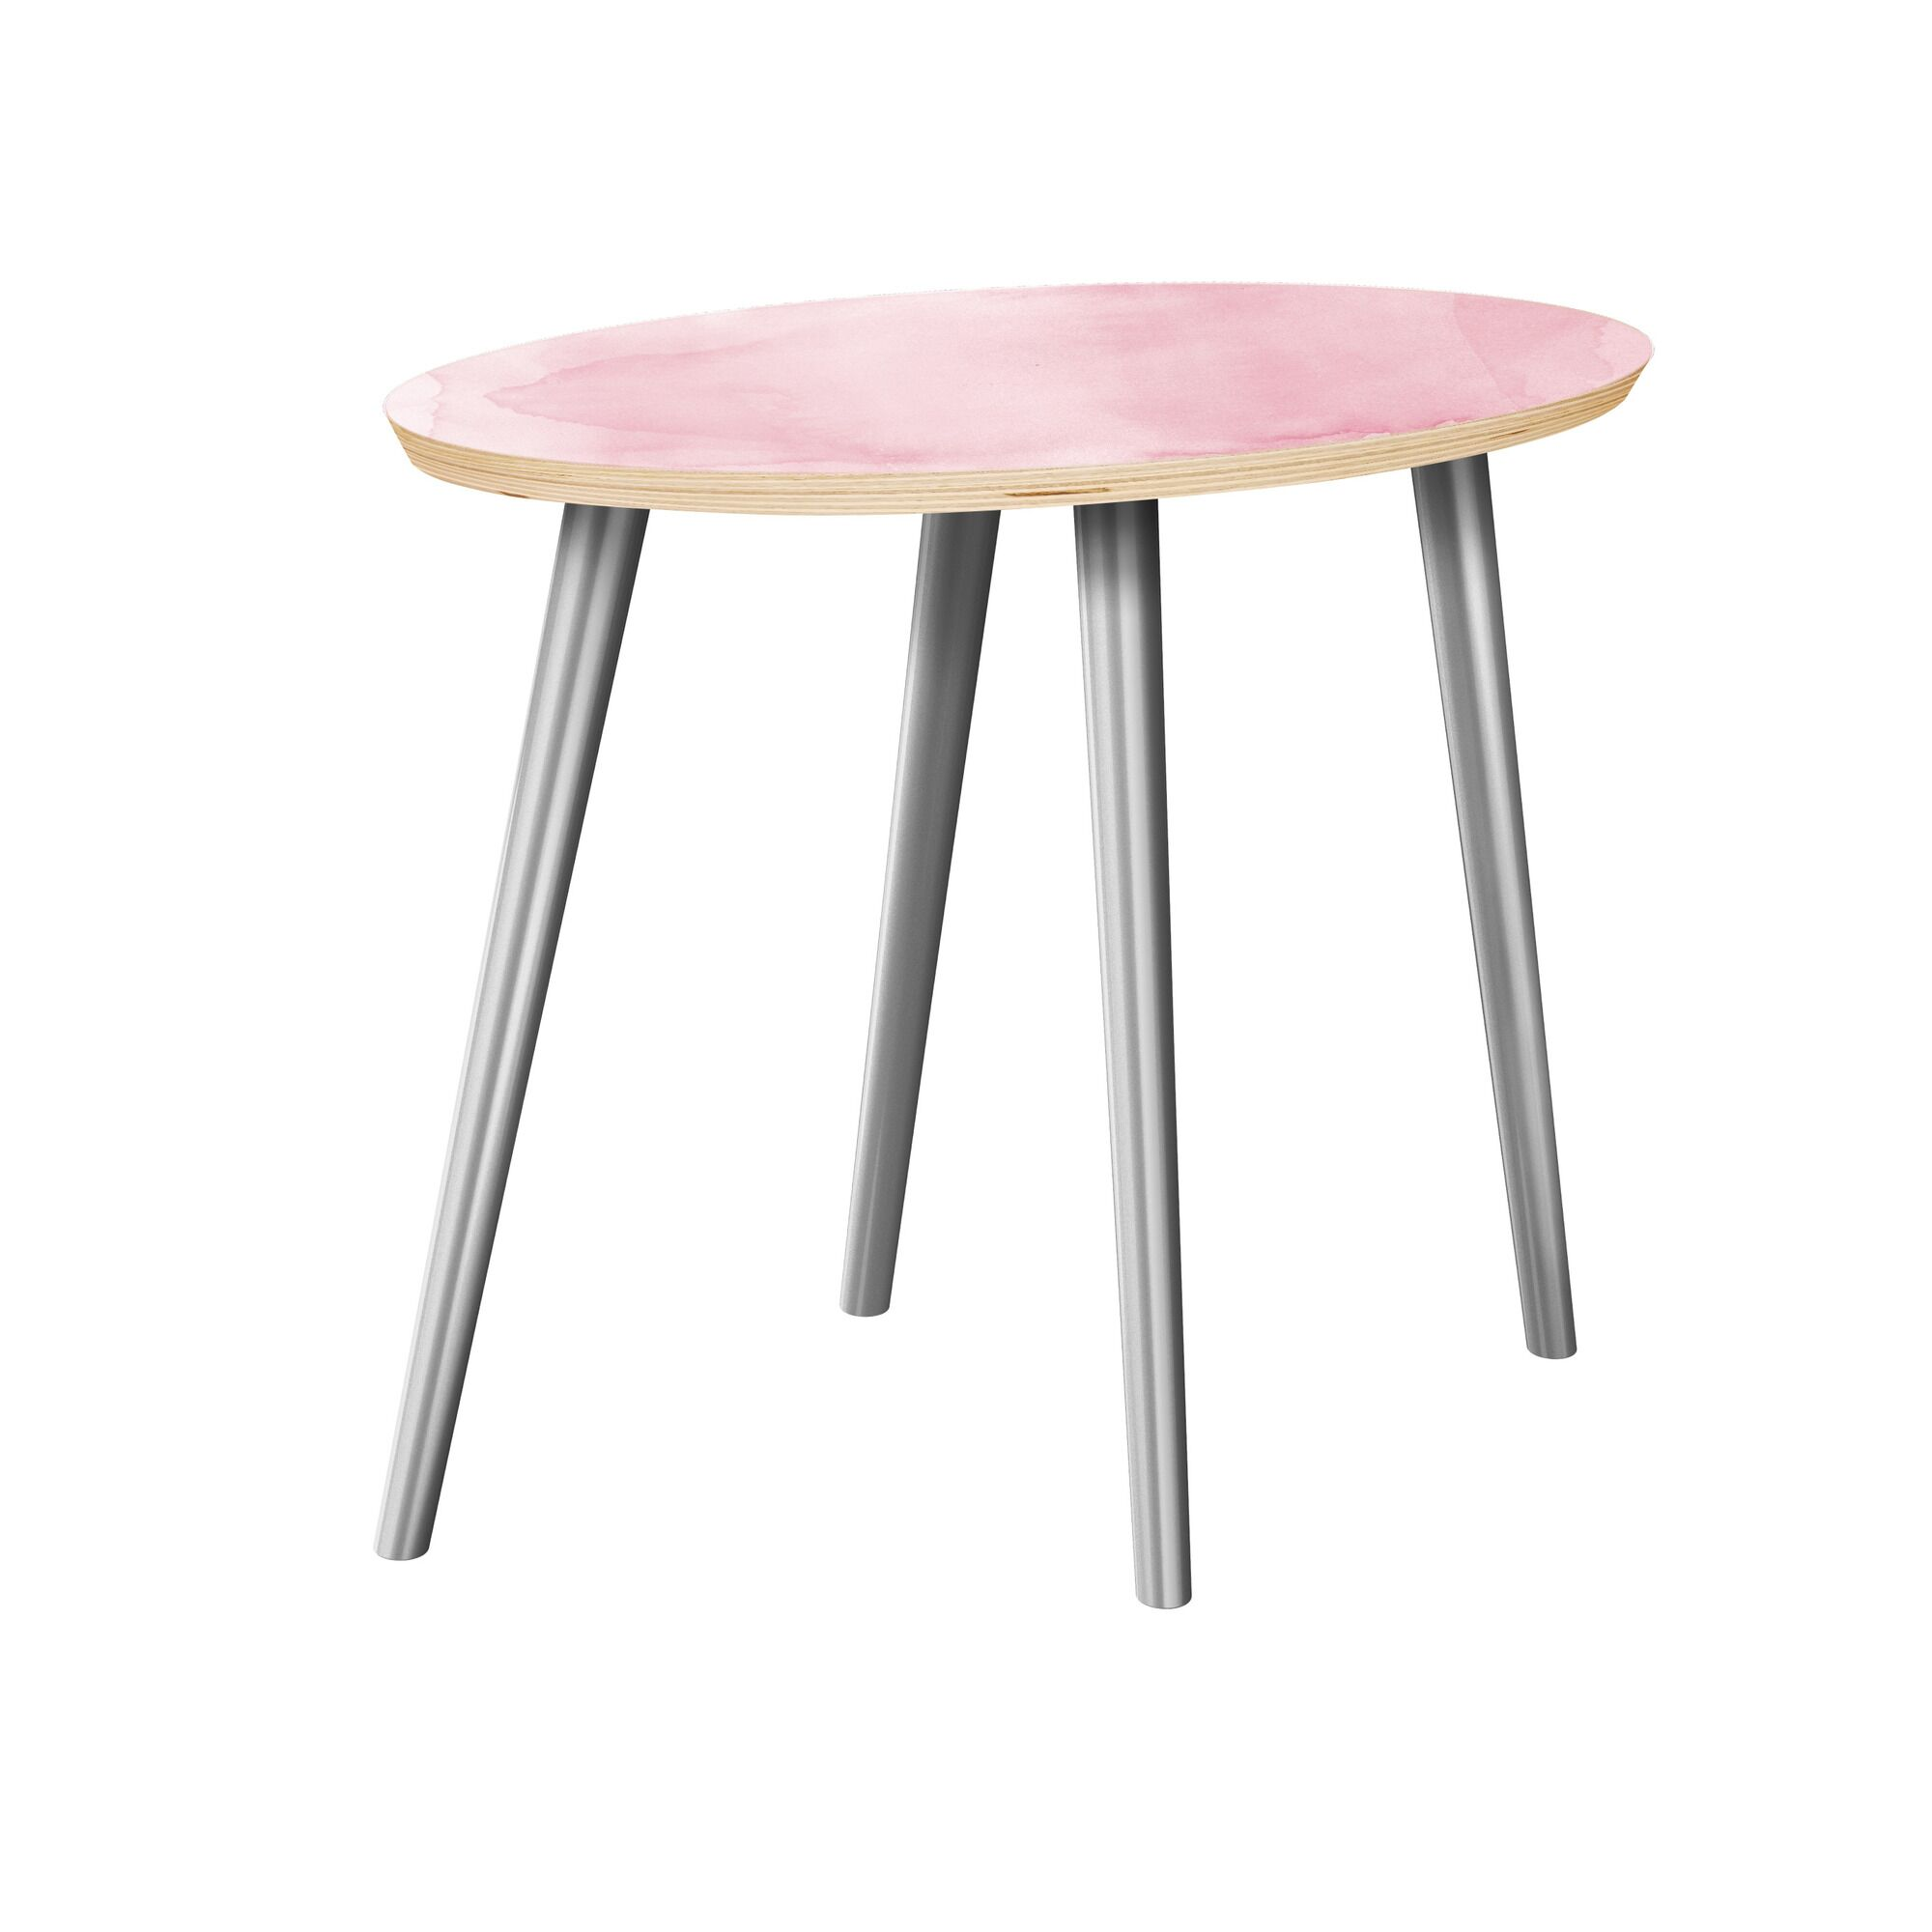 Jarret End Table Table Top Boarder Color: Natural, Table Base Color: Chrome, Table Top Color: Gray/Black